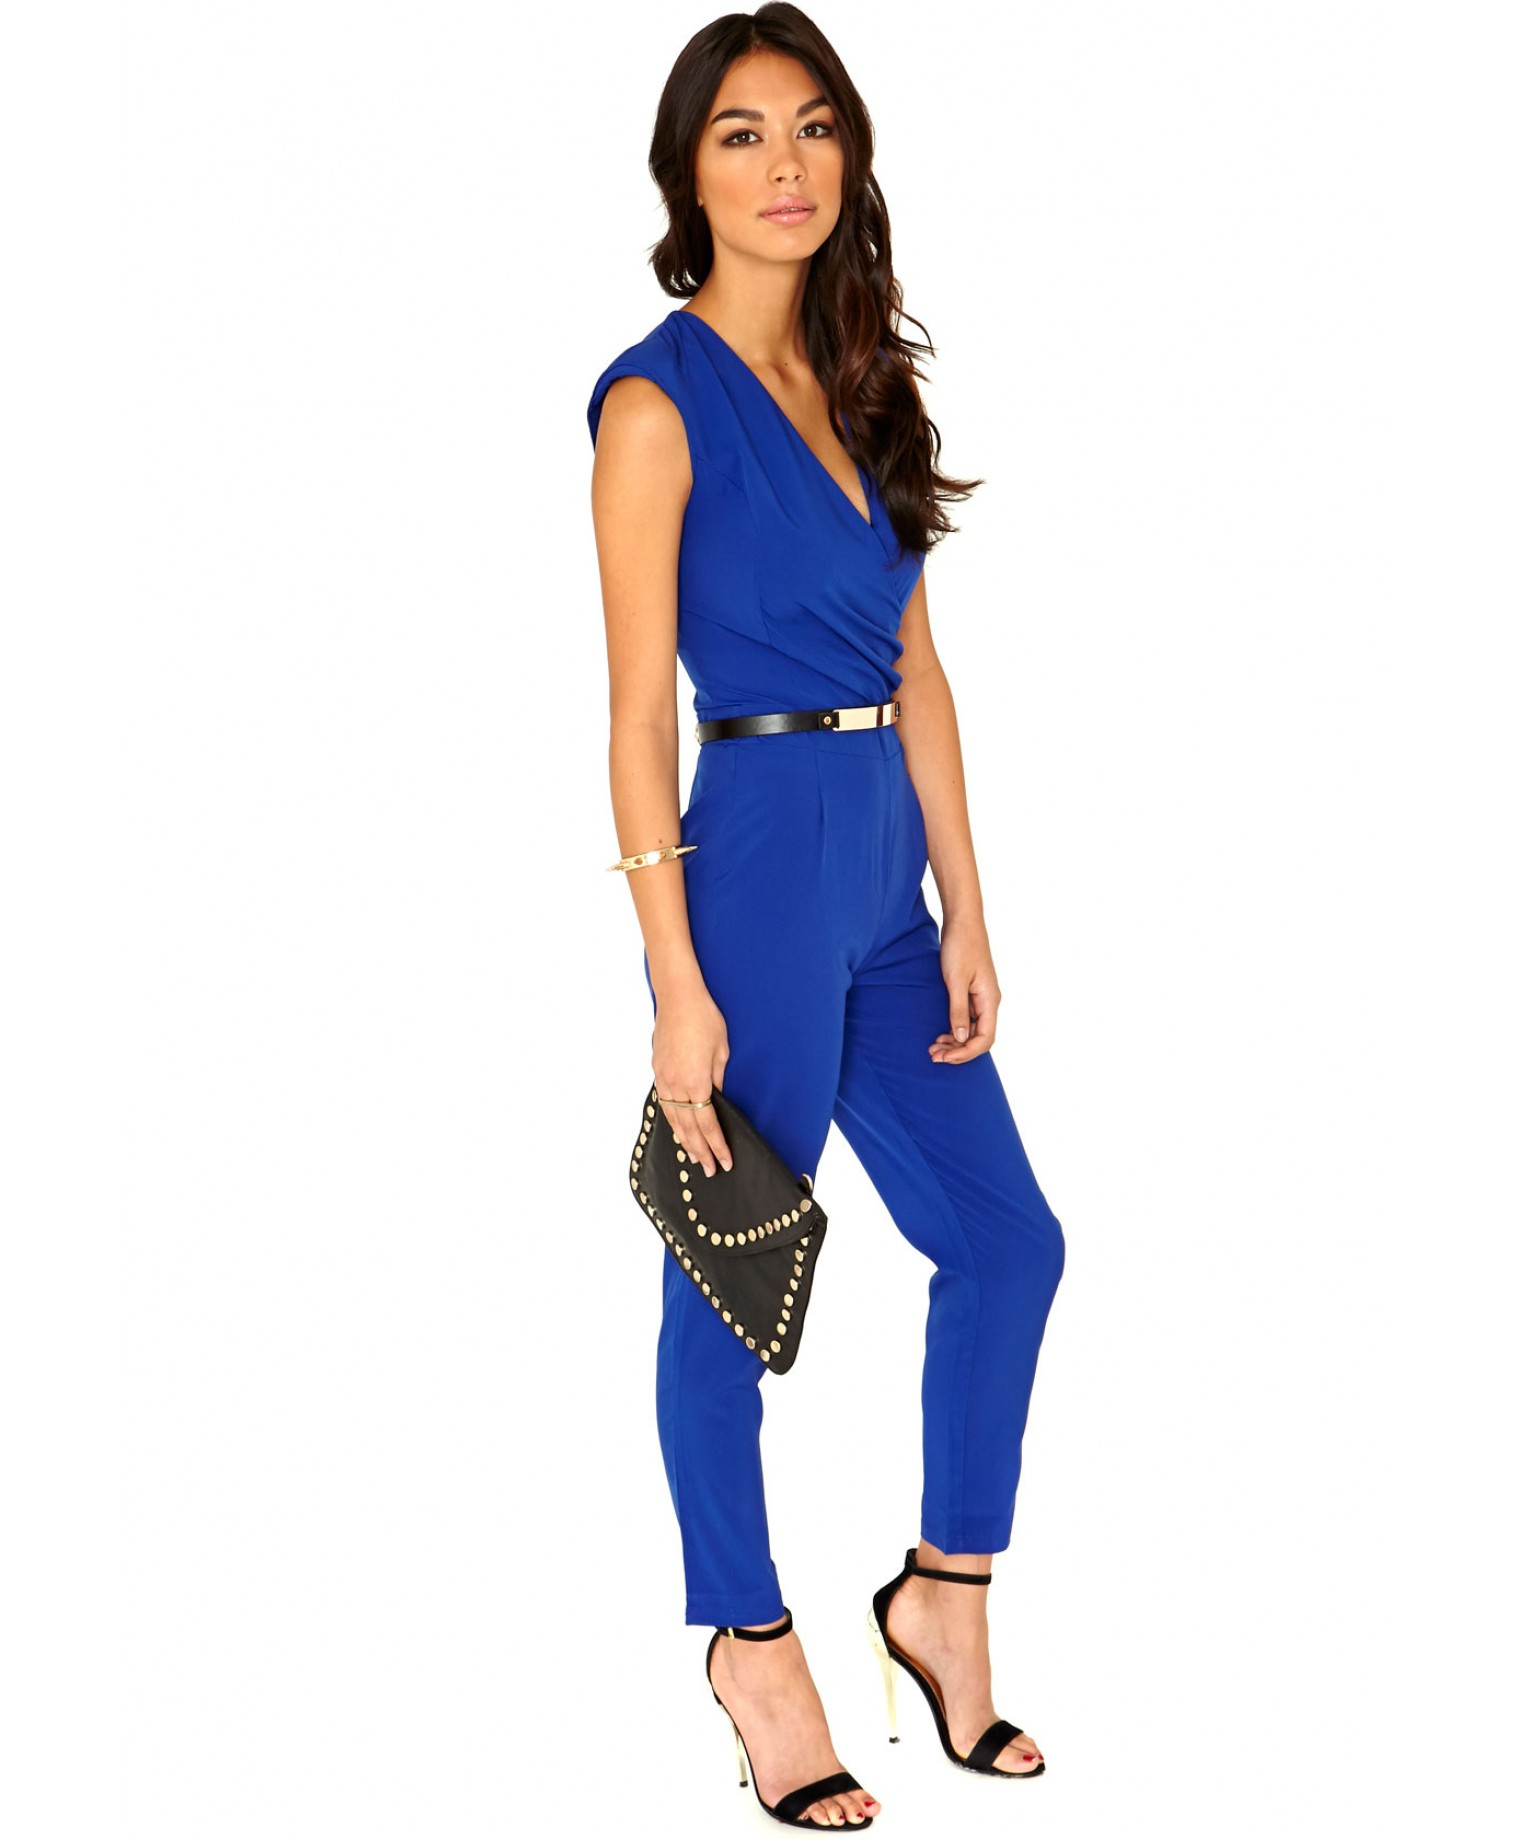 Missguided Jerma Crossover Tailored Jumpsuit In Cobalt Blue in ...